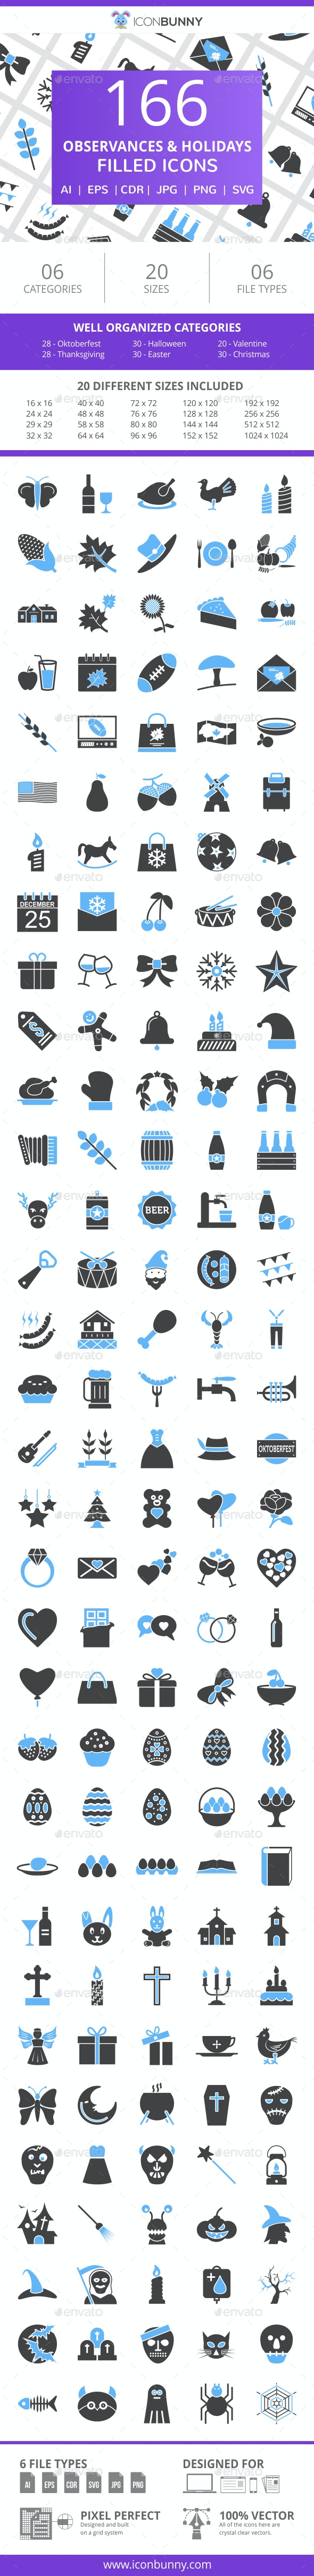 230 Observances & Holiday Filled Blue & Black Icons - Icons